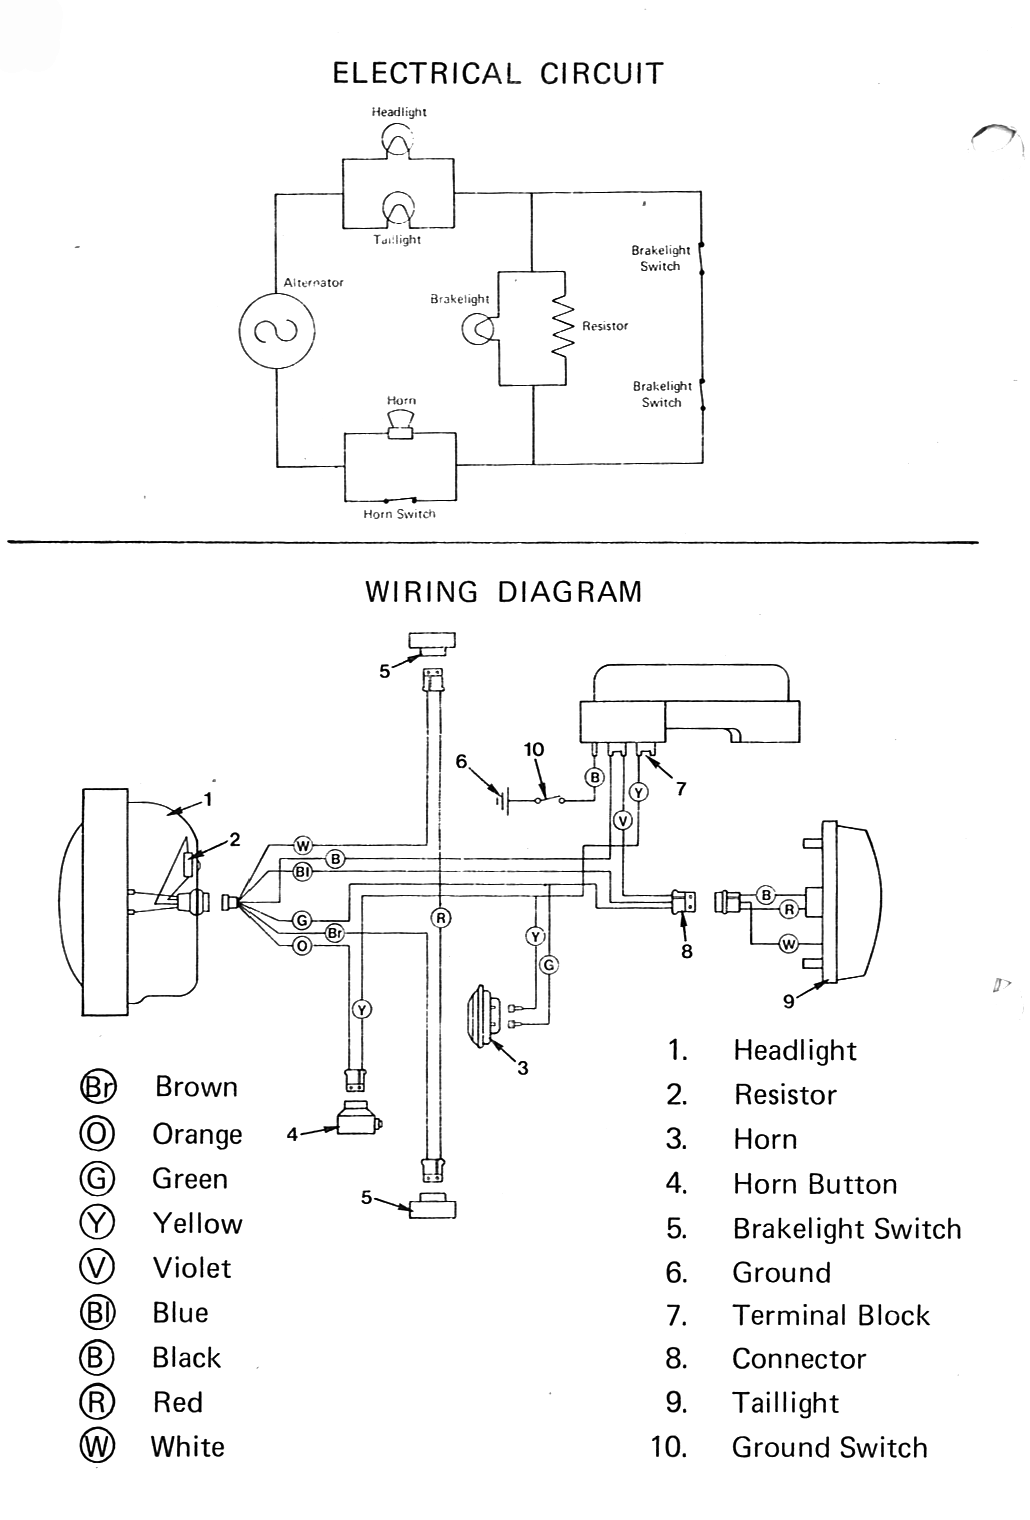 Honda C50 Wiring Diagram Worksheet And C90 6v Library Rh 4 Csu Lichtenhof De